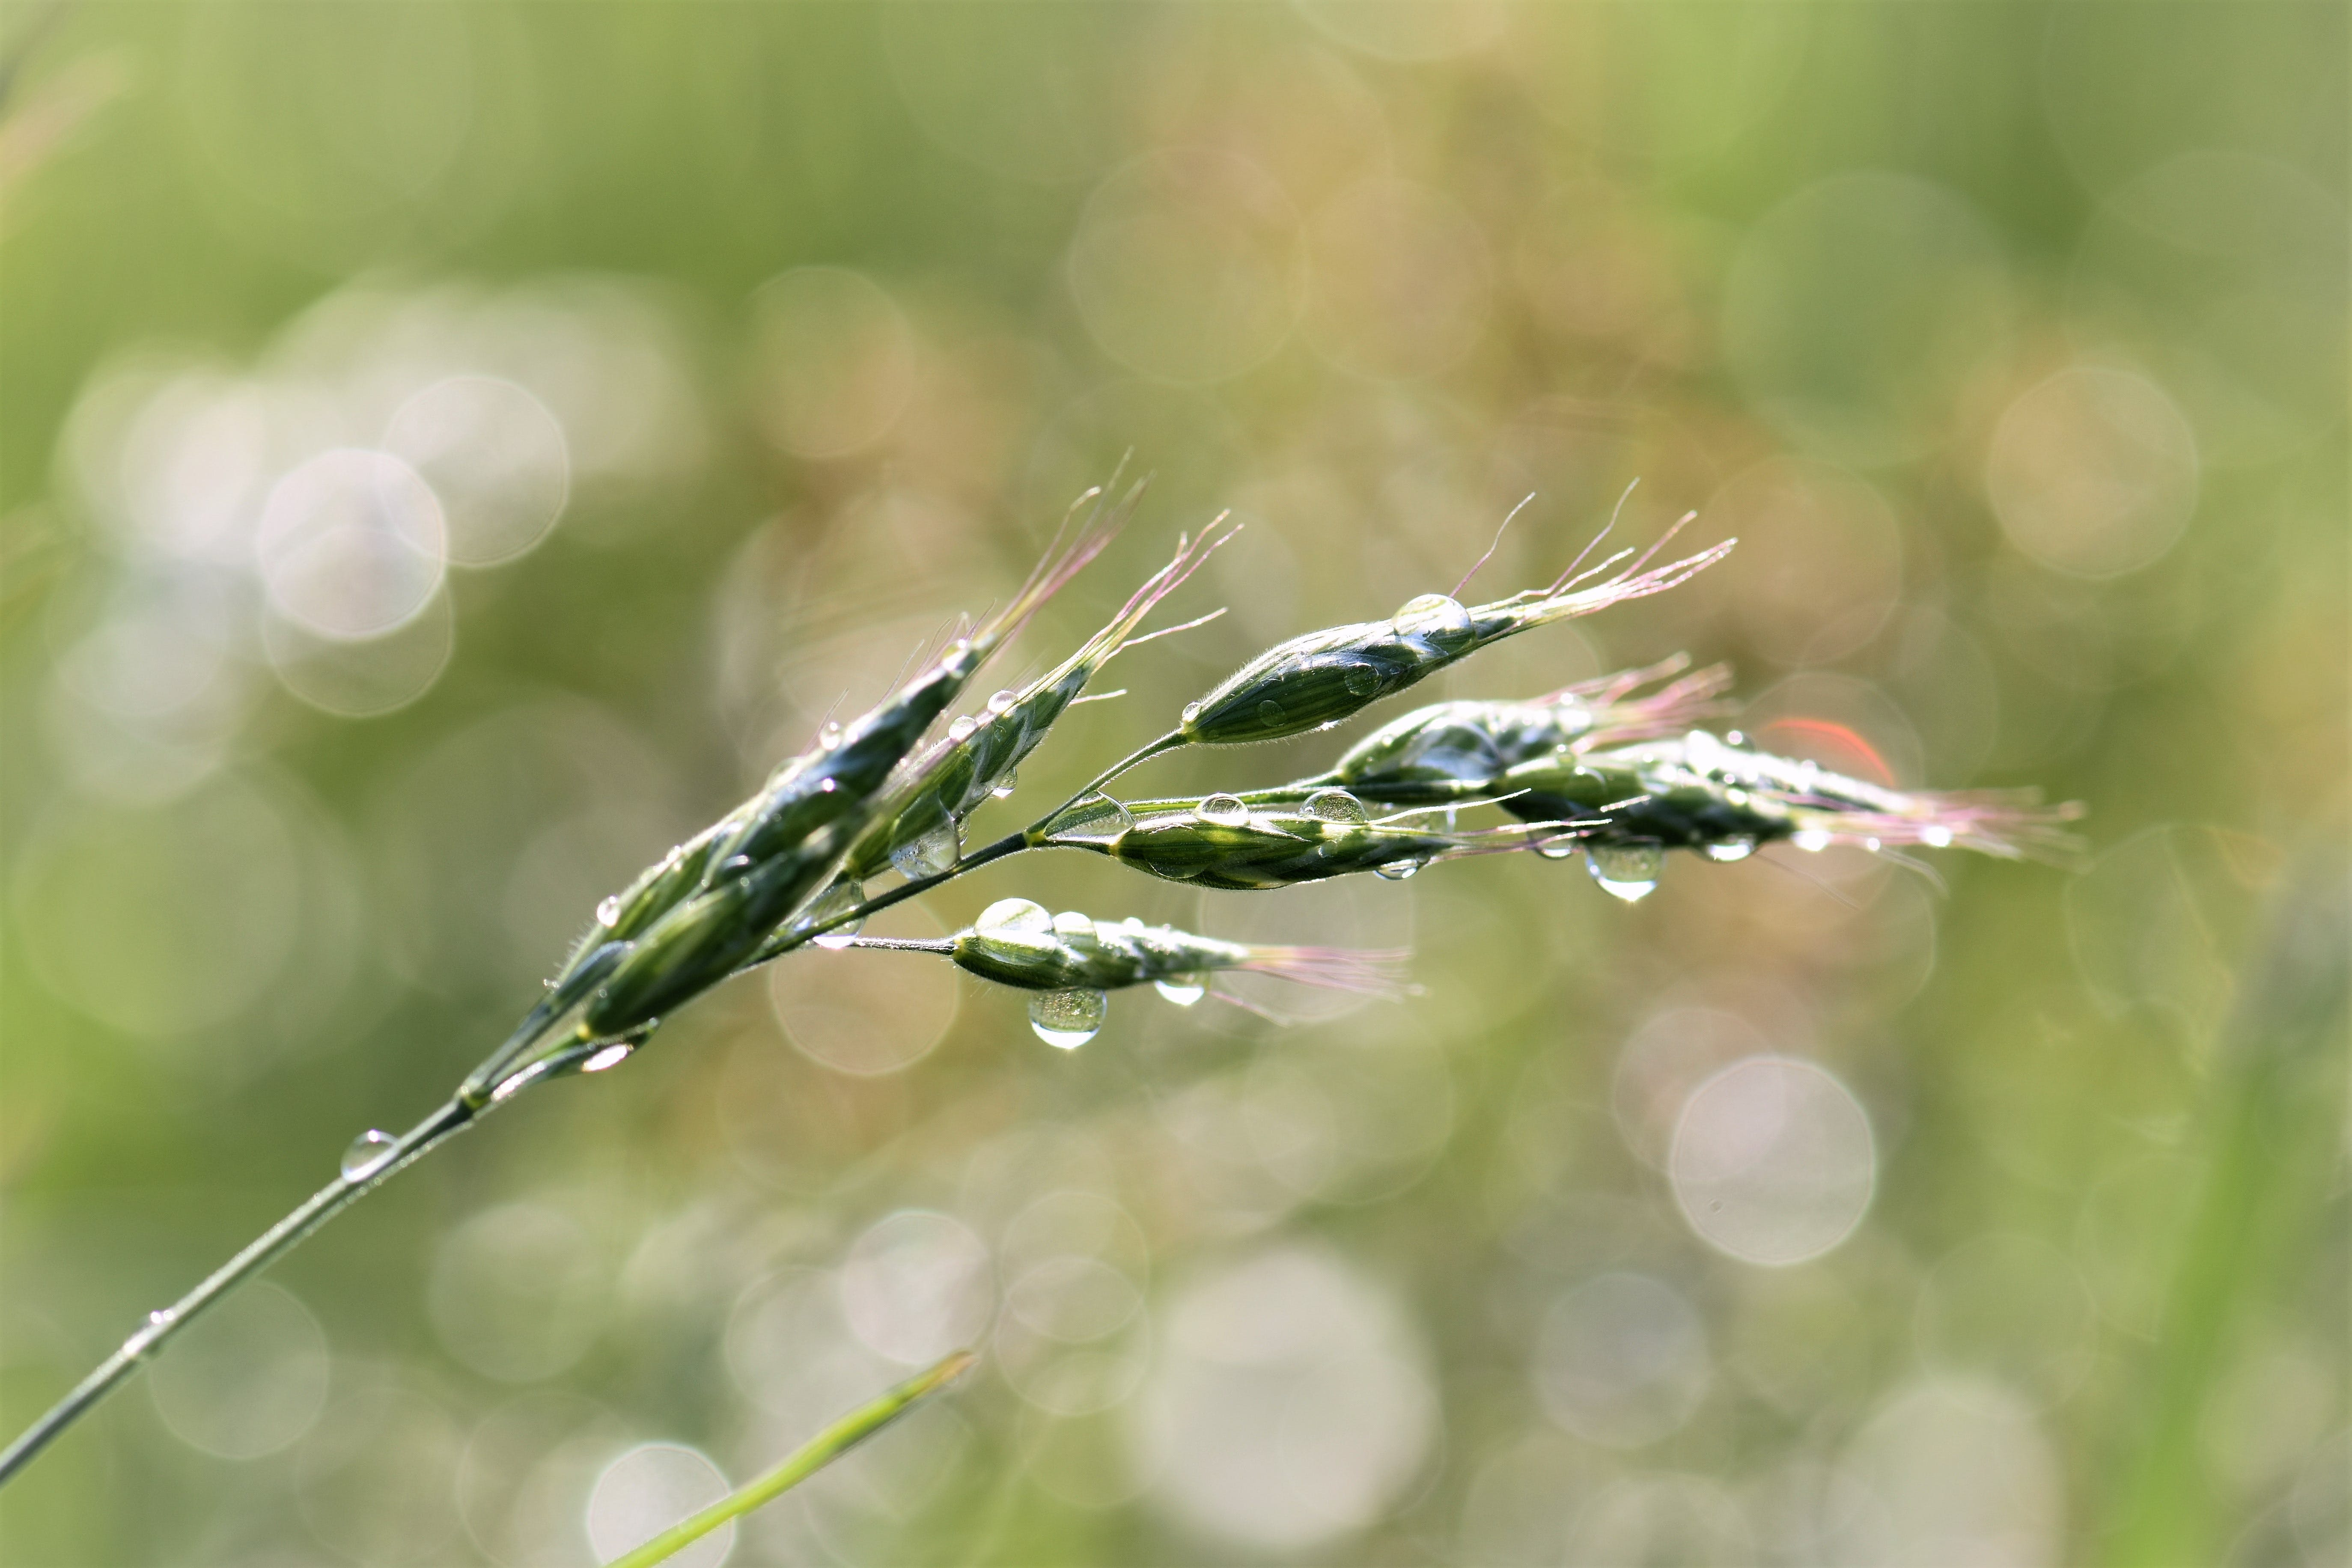 blade of grass, blur, bokeh